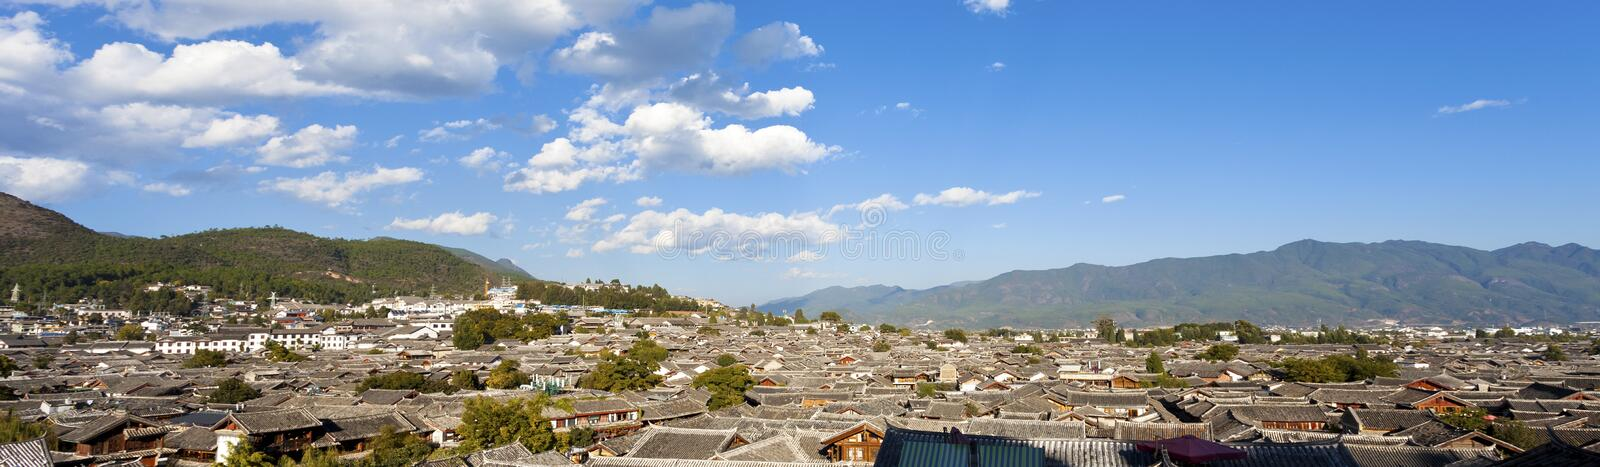 Lijiang old town in China